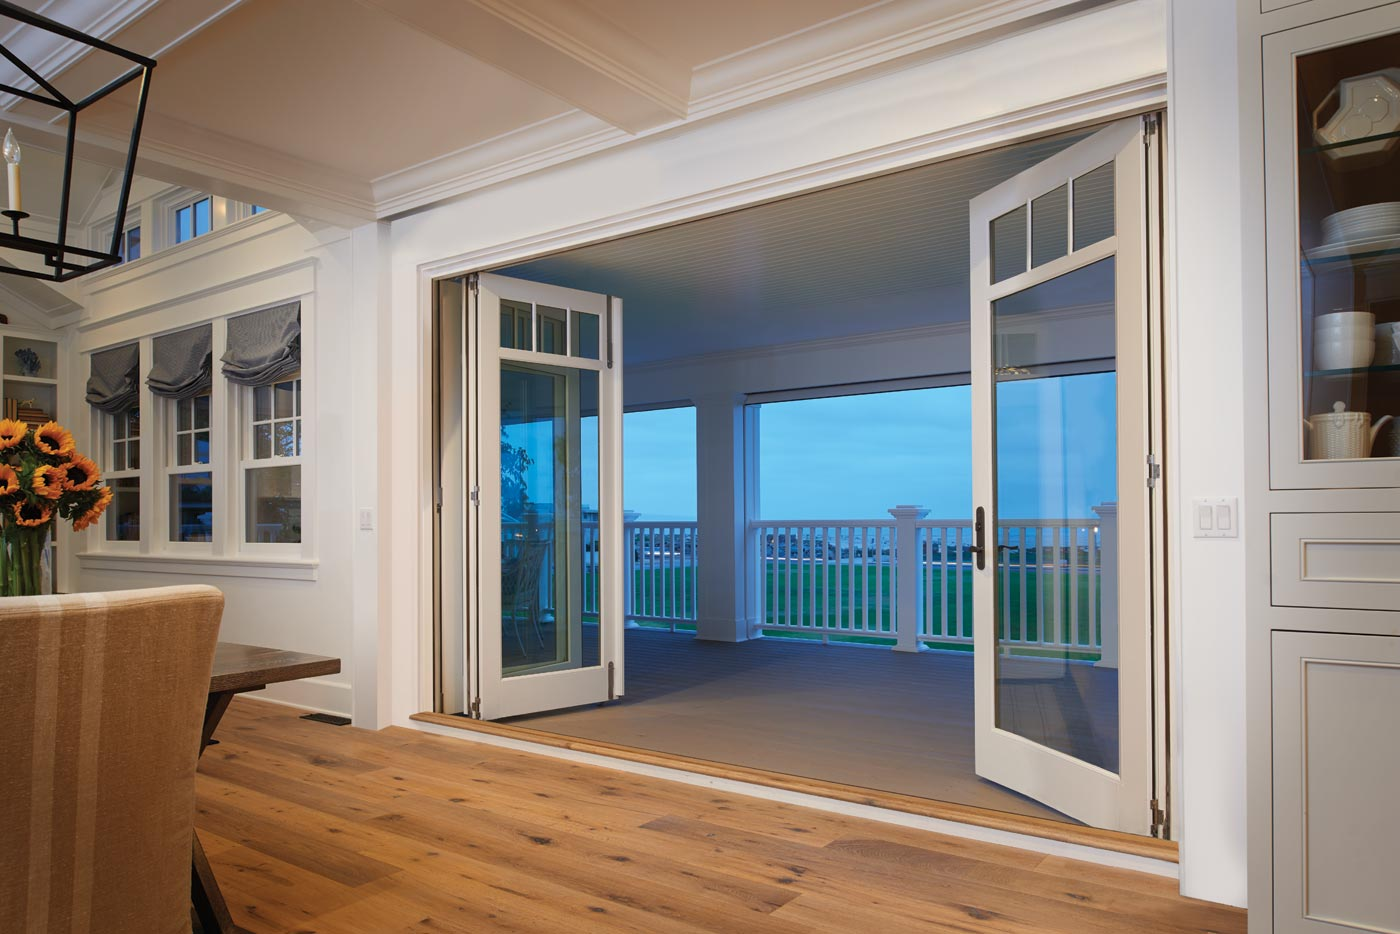 8 foot french doors exterior photo - 10